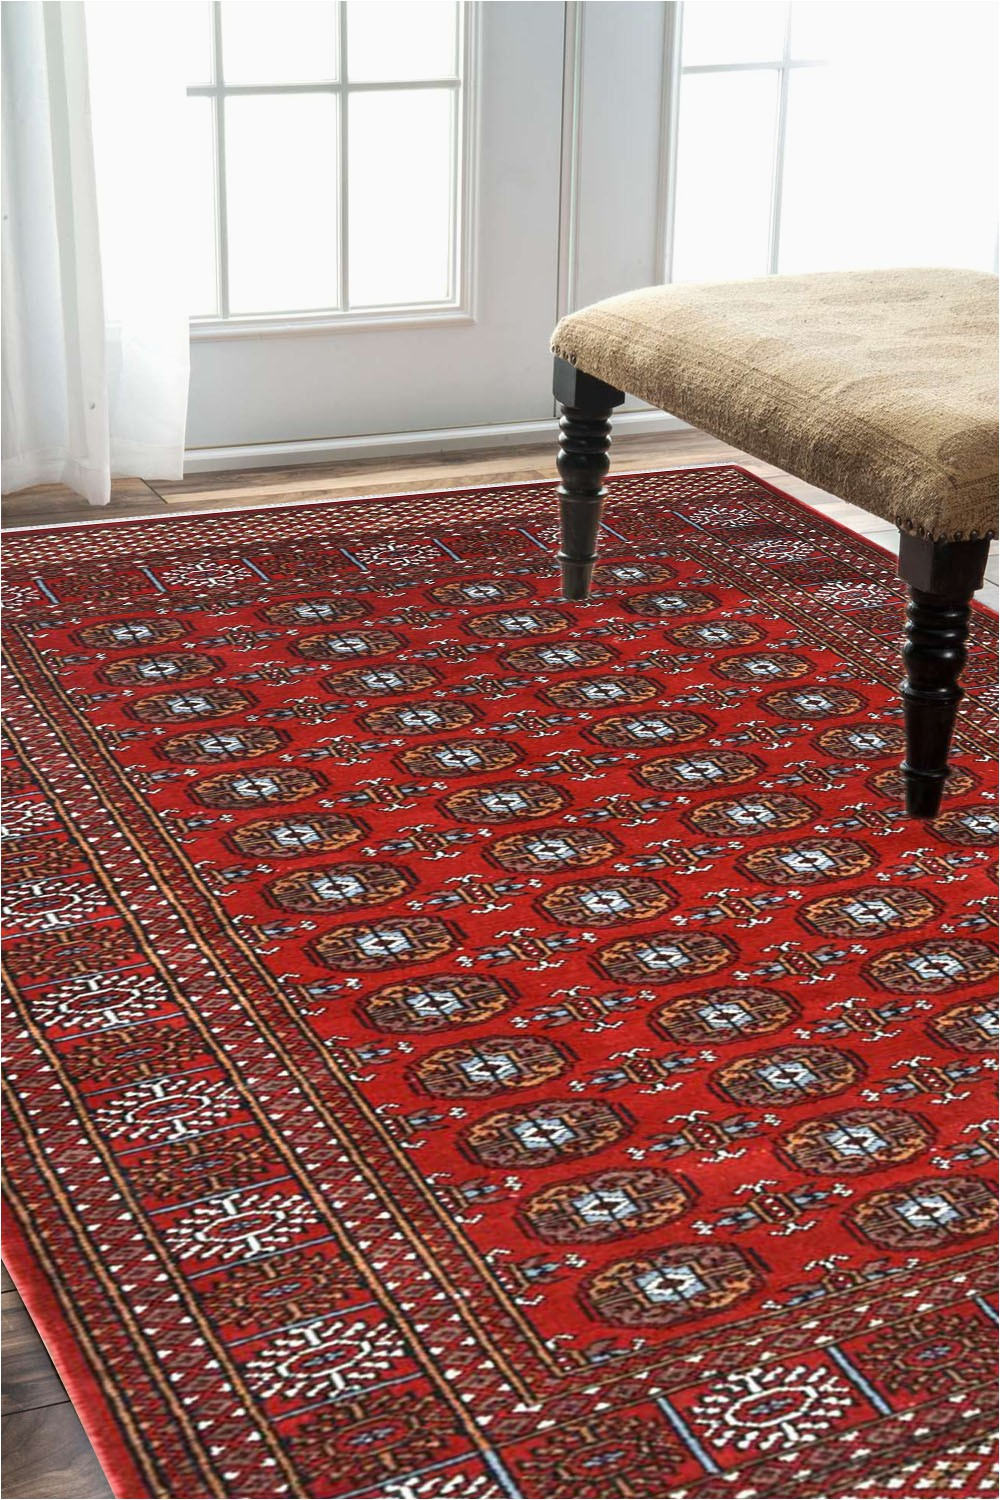 Area Rugs Made In India Indian Bukhara Afghan area Rug